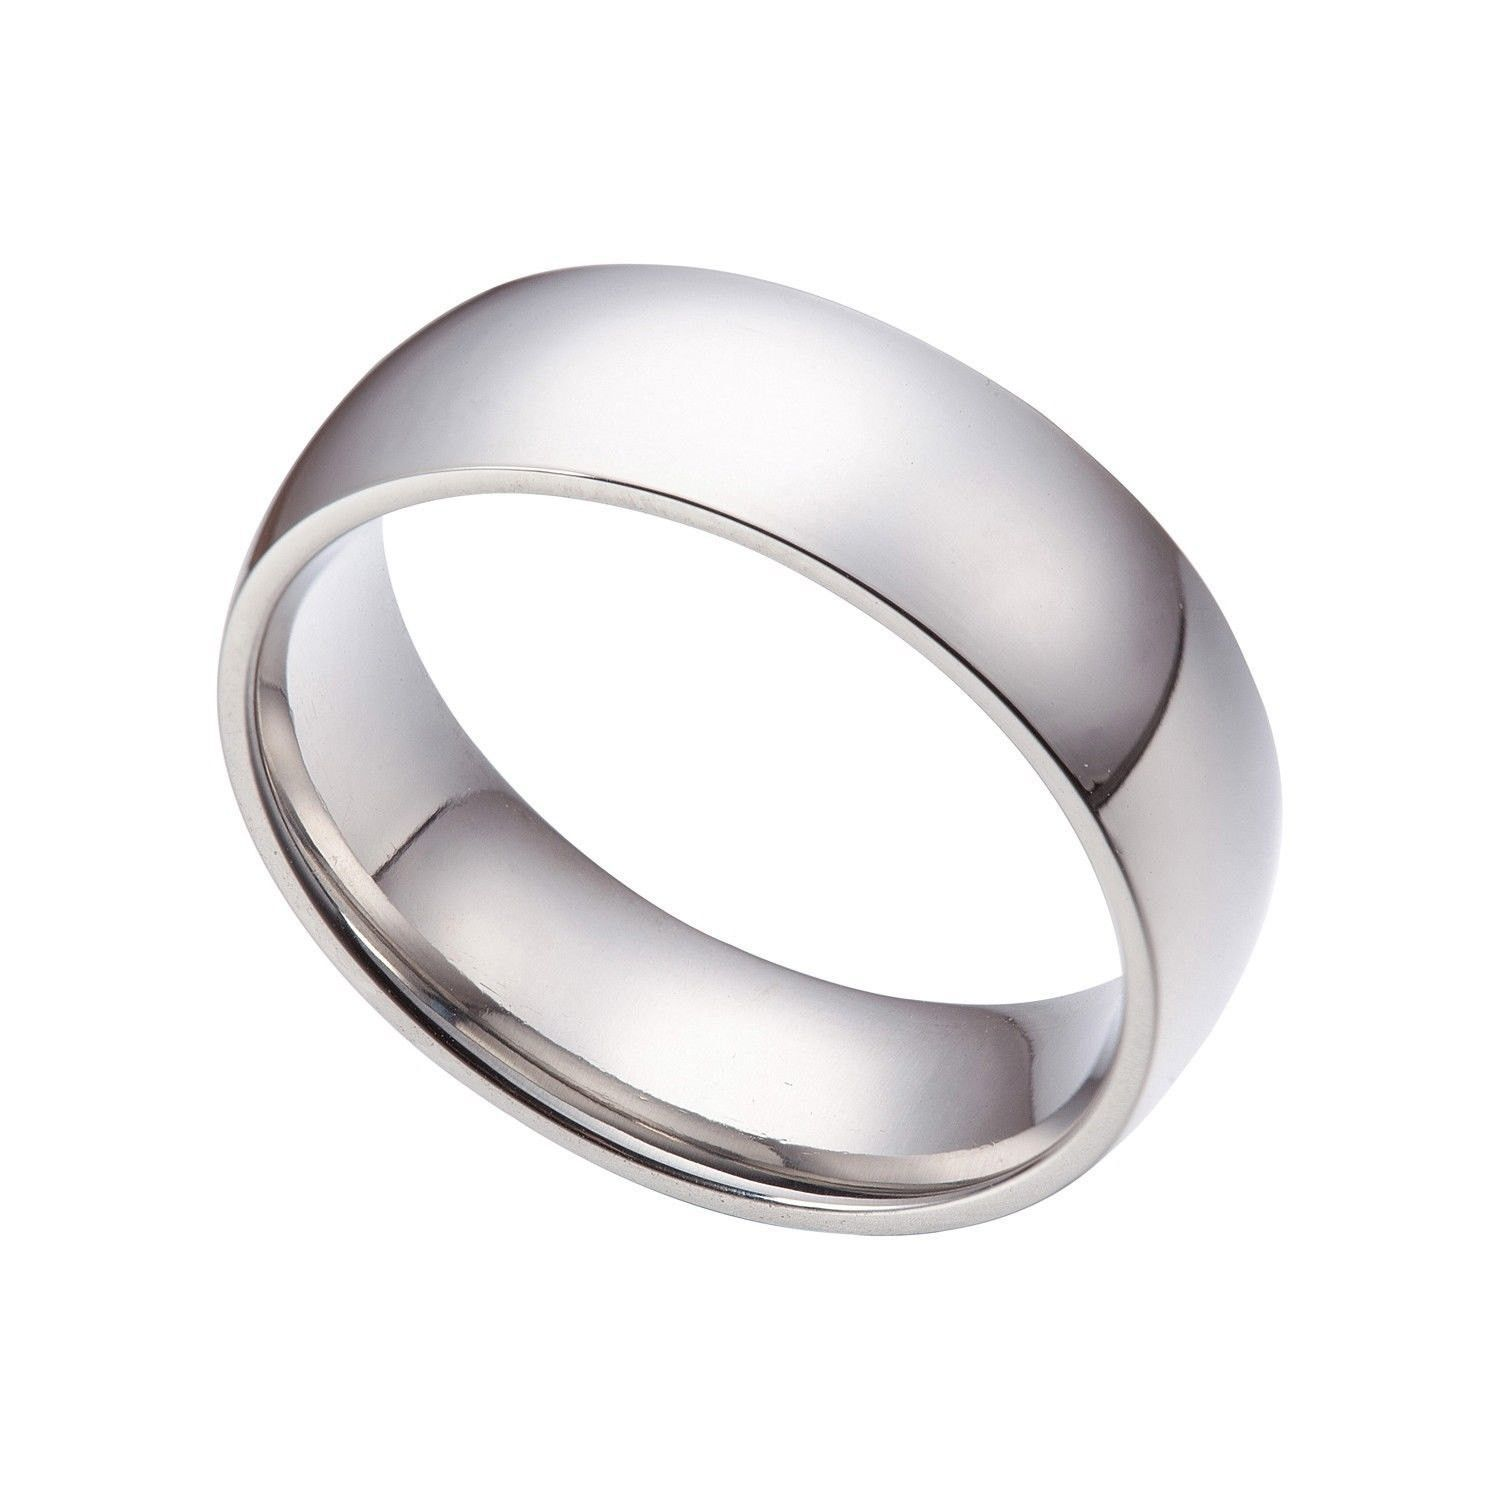 4mm his hers 925 sterling silver simple wedding engagement ring